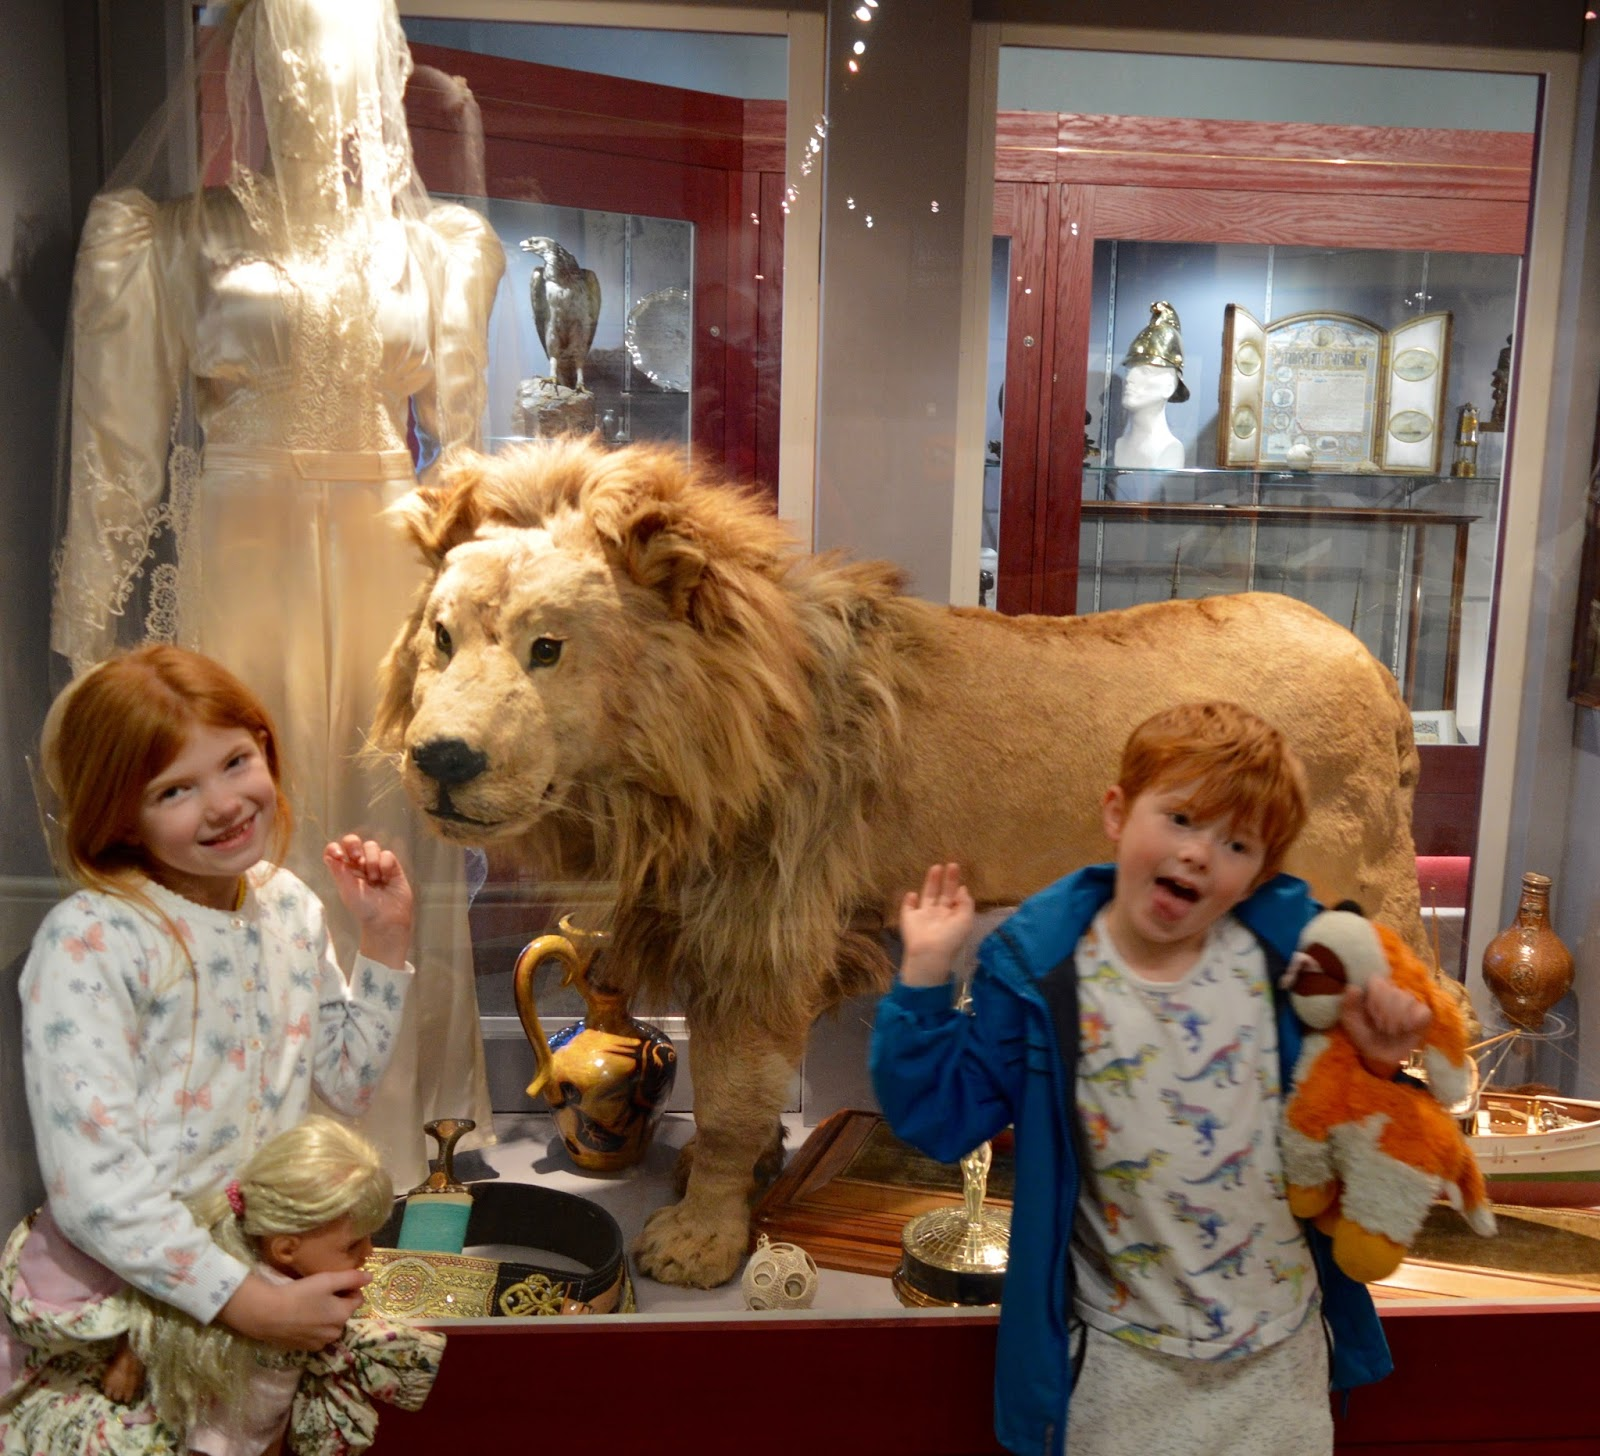 15+ Things To Do In South Shields - Lion at South Shields Museum l